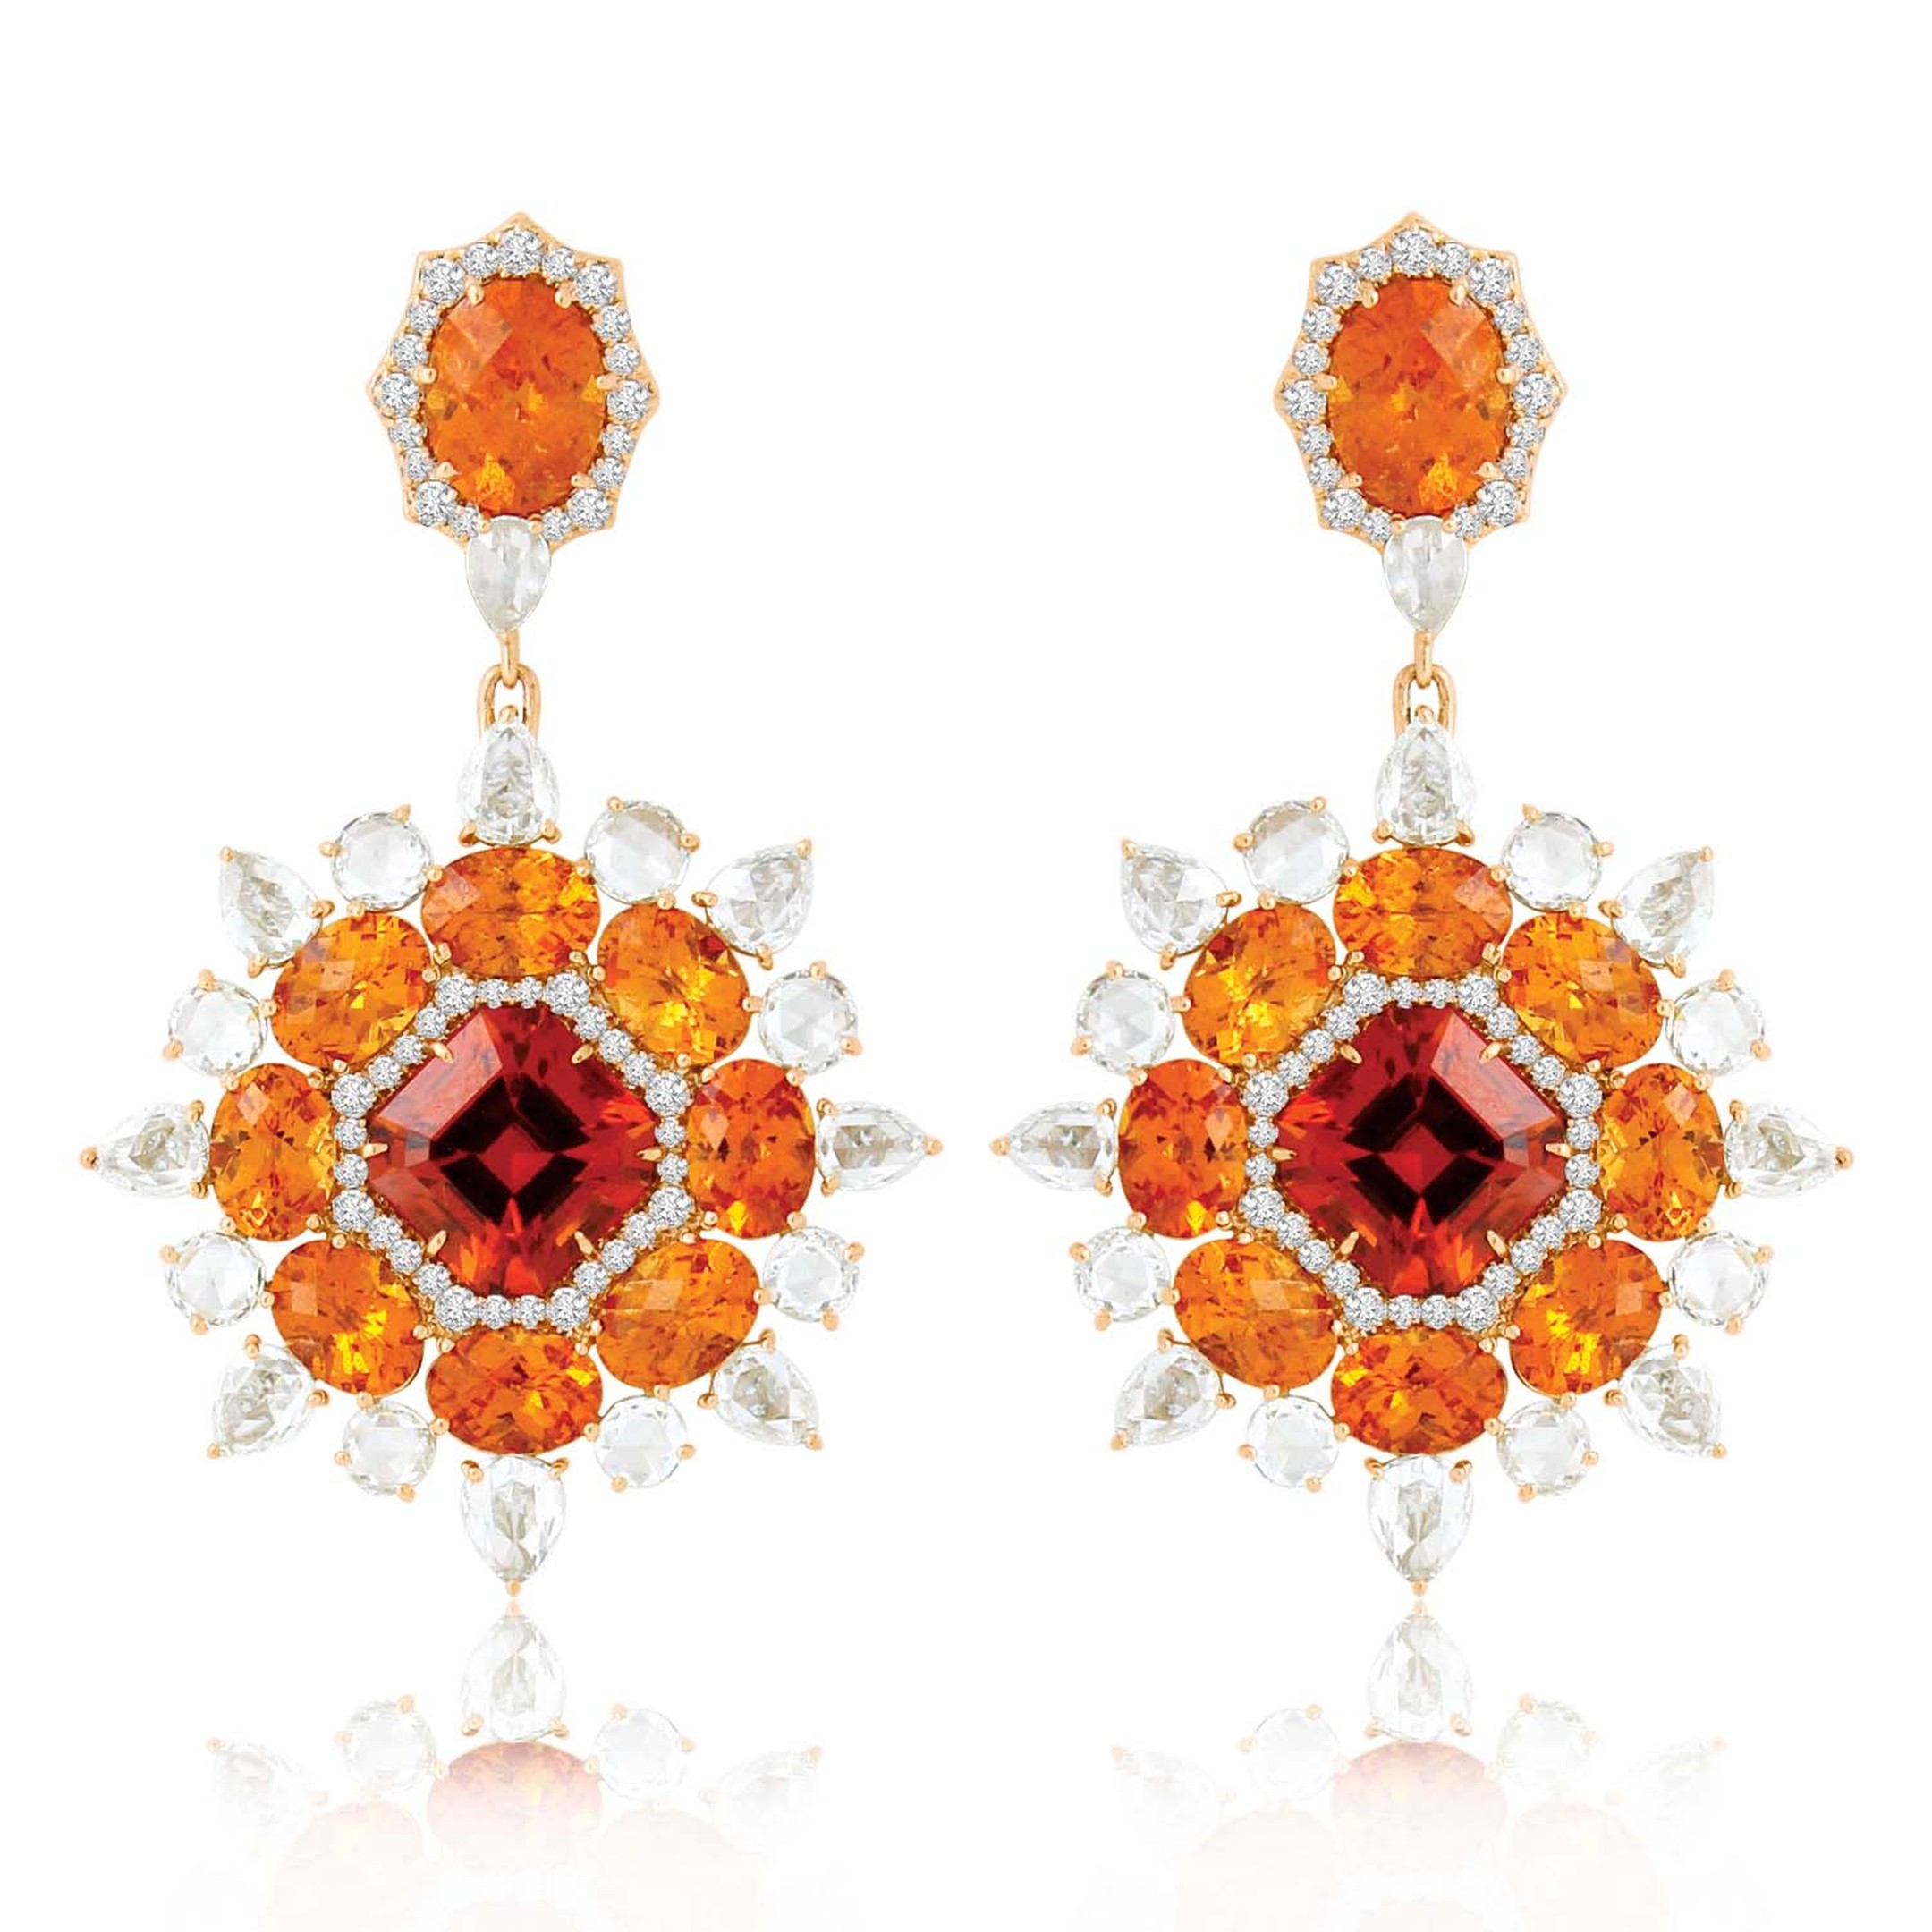 Sutra earrings with Mandarin garnets and diamonds in white gold.